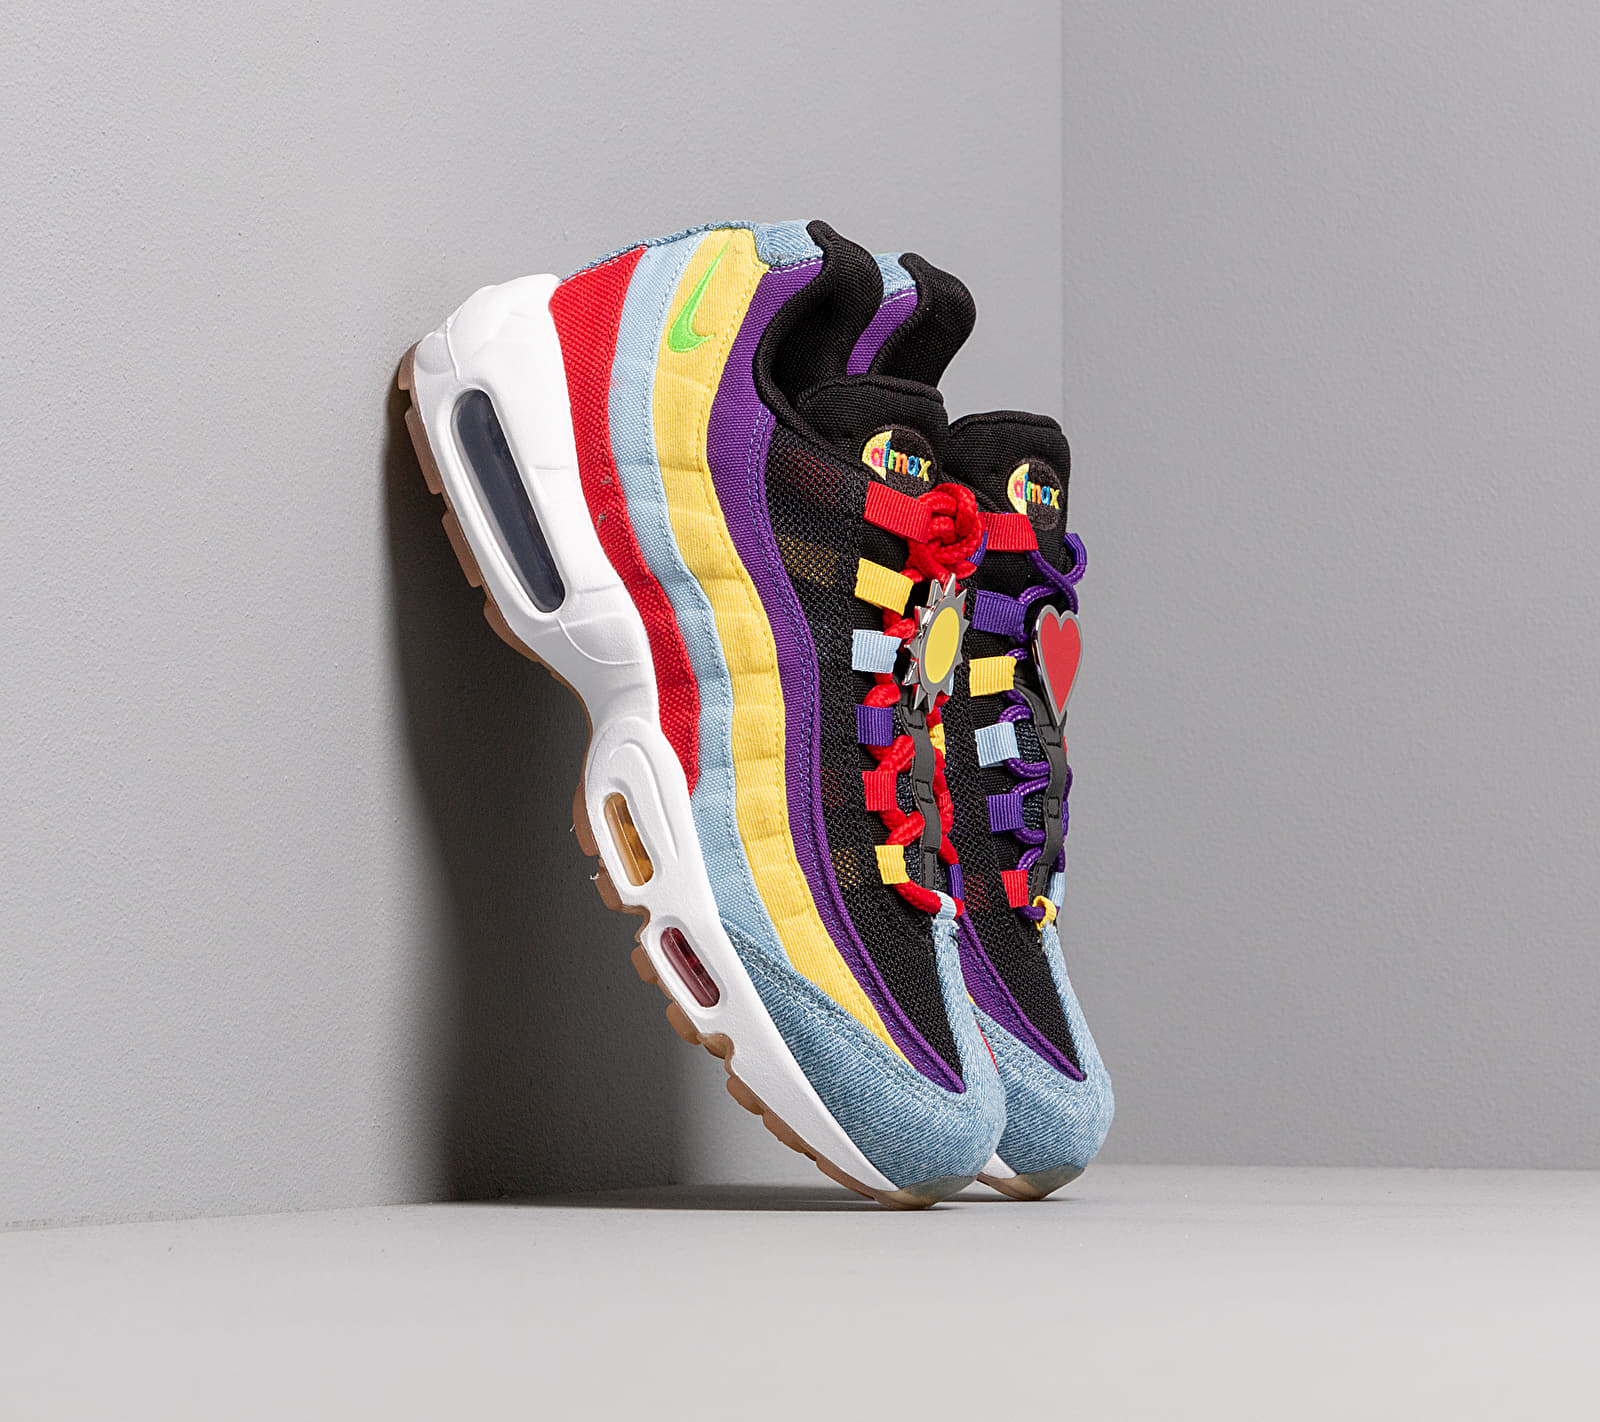 Nike Air Max 95 SP Psychic Blue/ Chrome Yellow, Multicolour